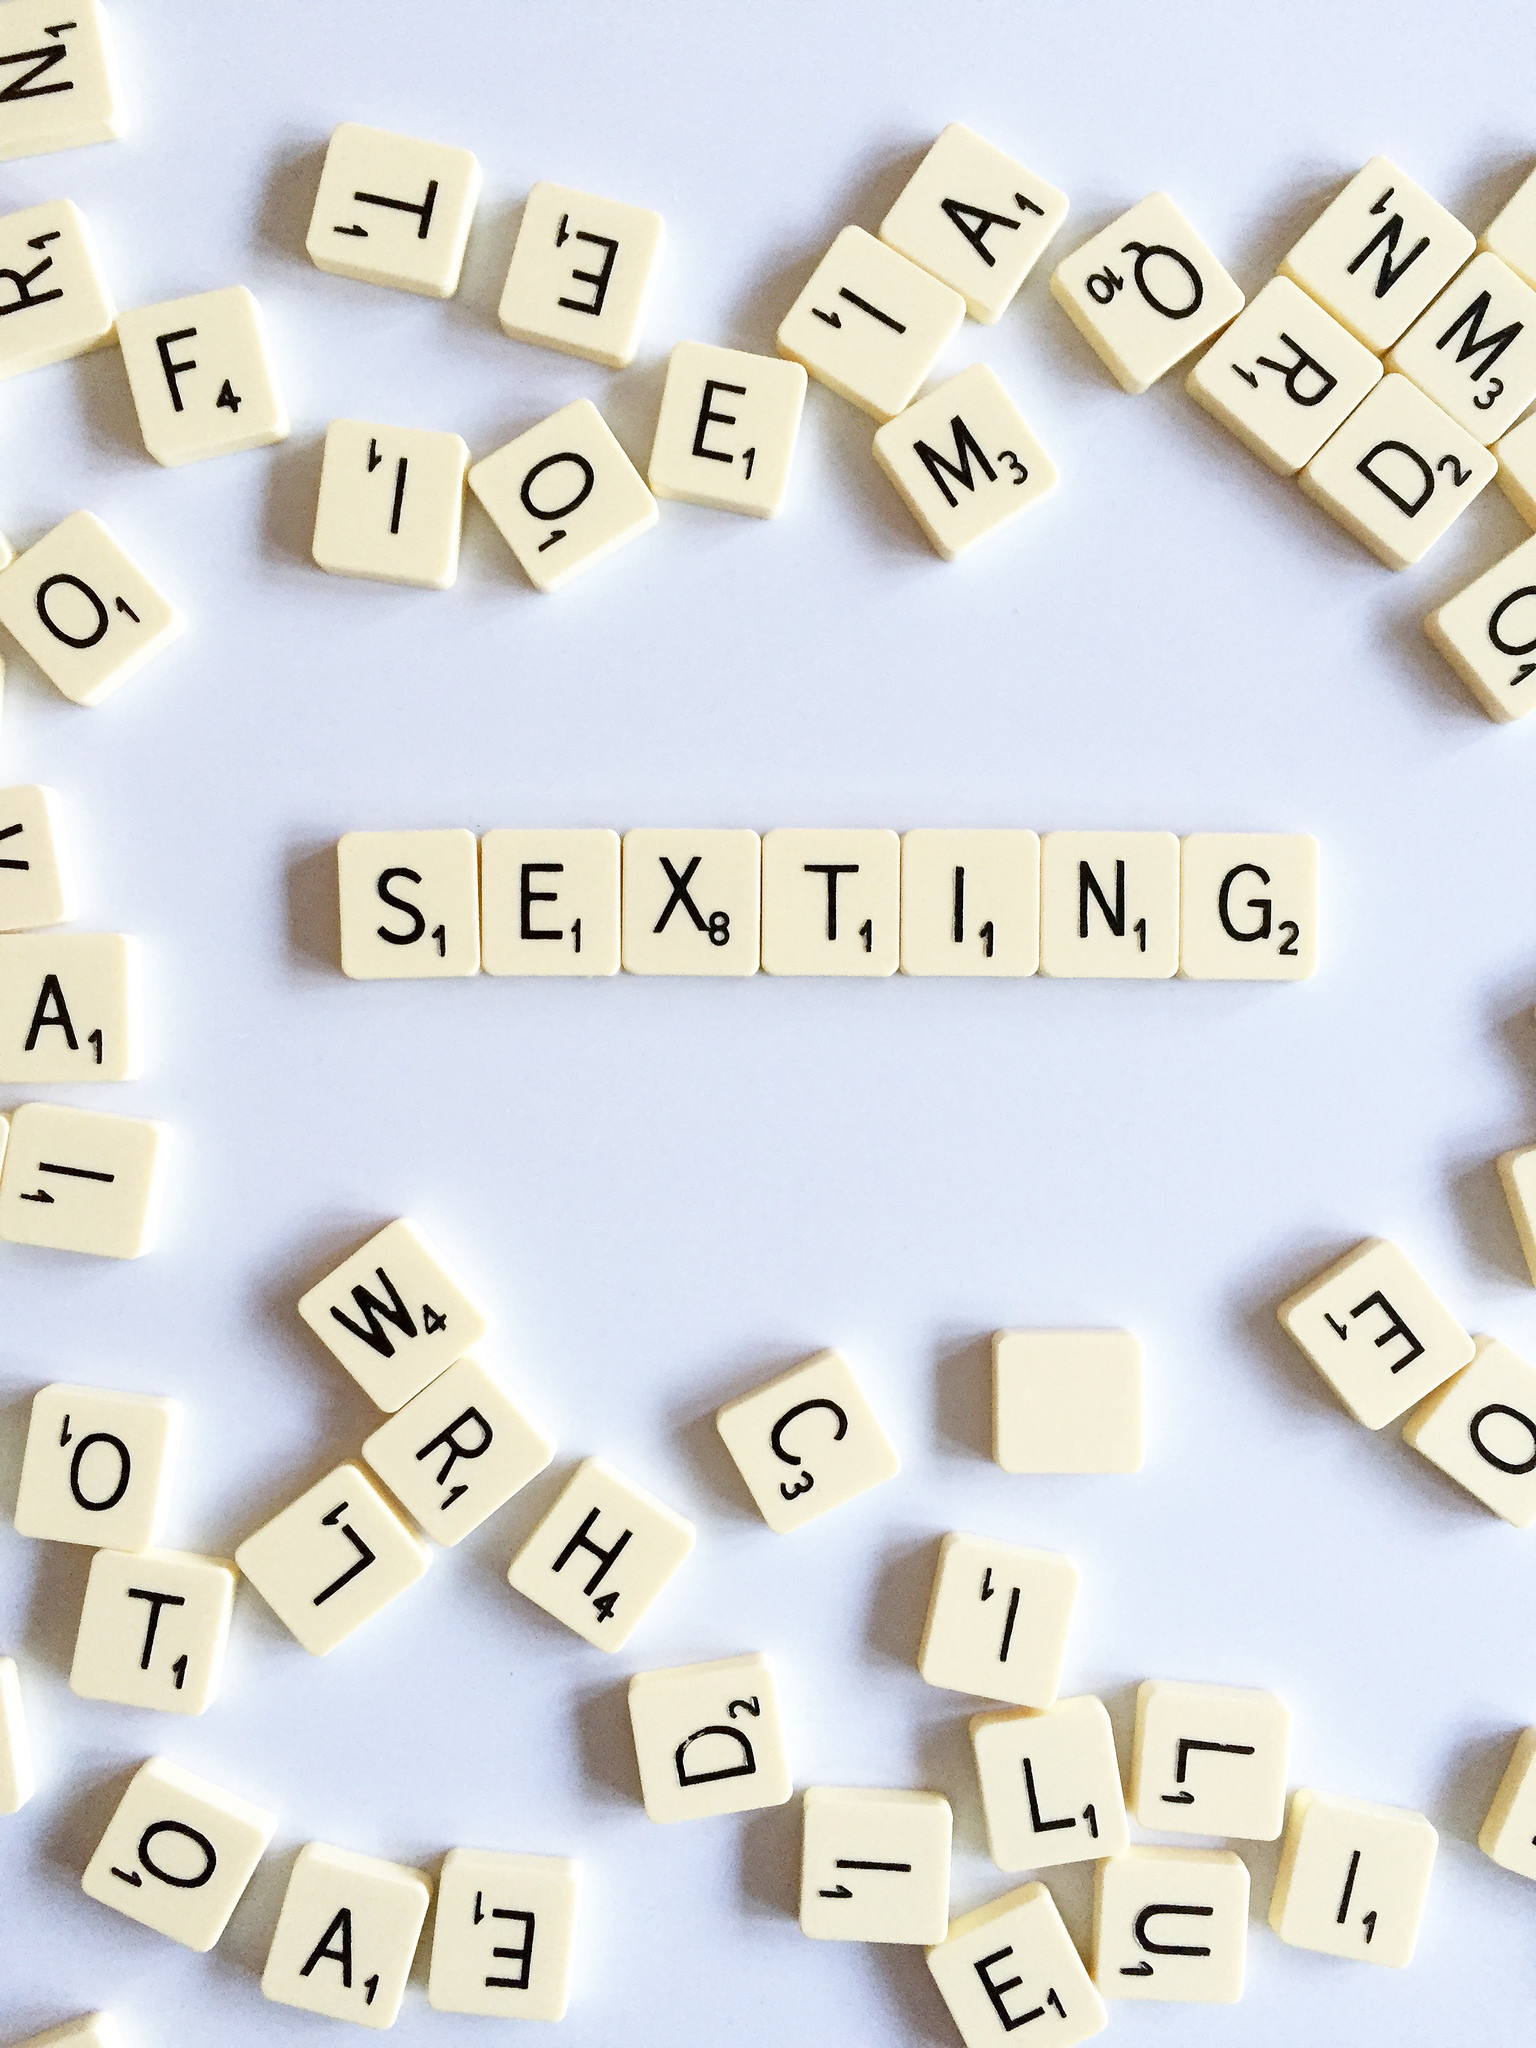 Sexting safety tips